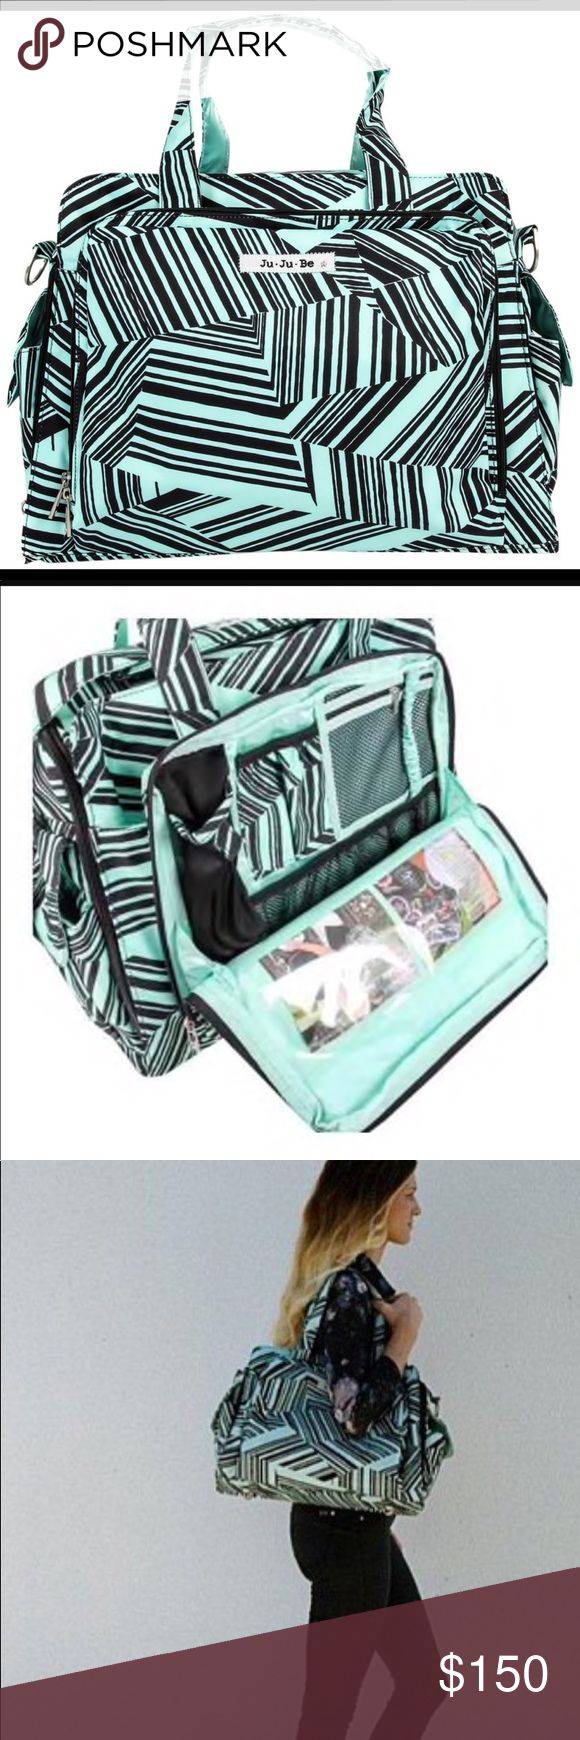 Jujube- Be prepared bag-Mint ((discontinued print) Jujube Be Prepared bag**🖤🖤THIS IS A MUST HAVE🖤🖤**Comes w/cross body strap, matching changing pad and brand new name tag in mint print(to match the bag) as well. I loved this bag, it's very roomy, pockets, easy to clean, insulated & more. My son is growing up and the need for this bag is not needed. It's used but in Great condition. Has lite scuff marks on front&bottom of bag. i would rate the overall appearance a 9 out of 10(9 due to the…